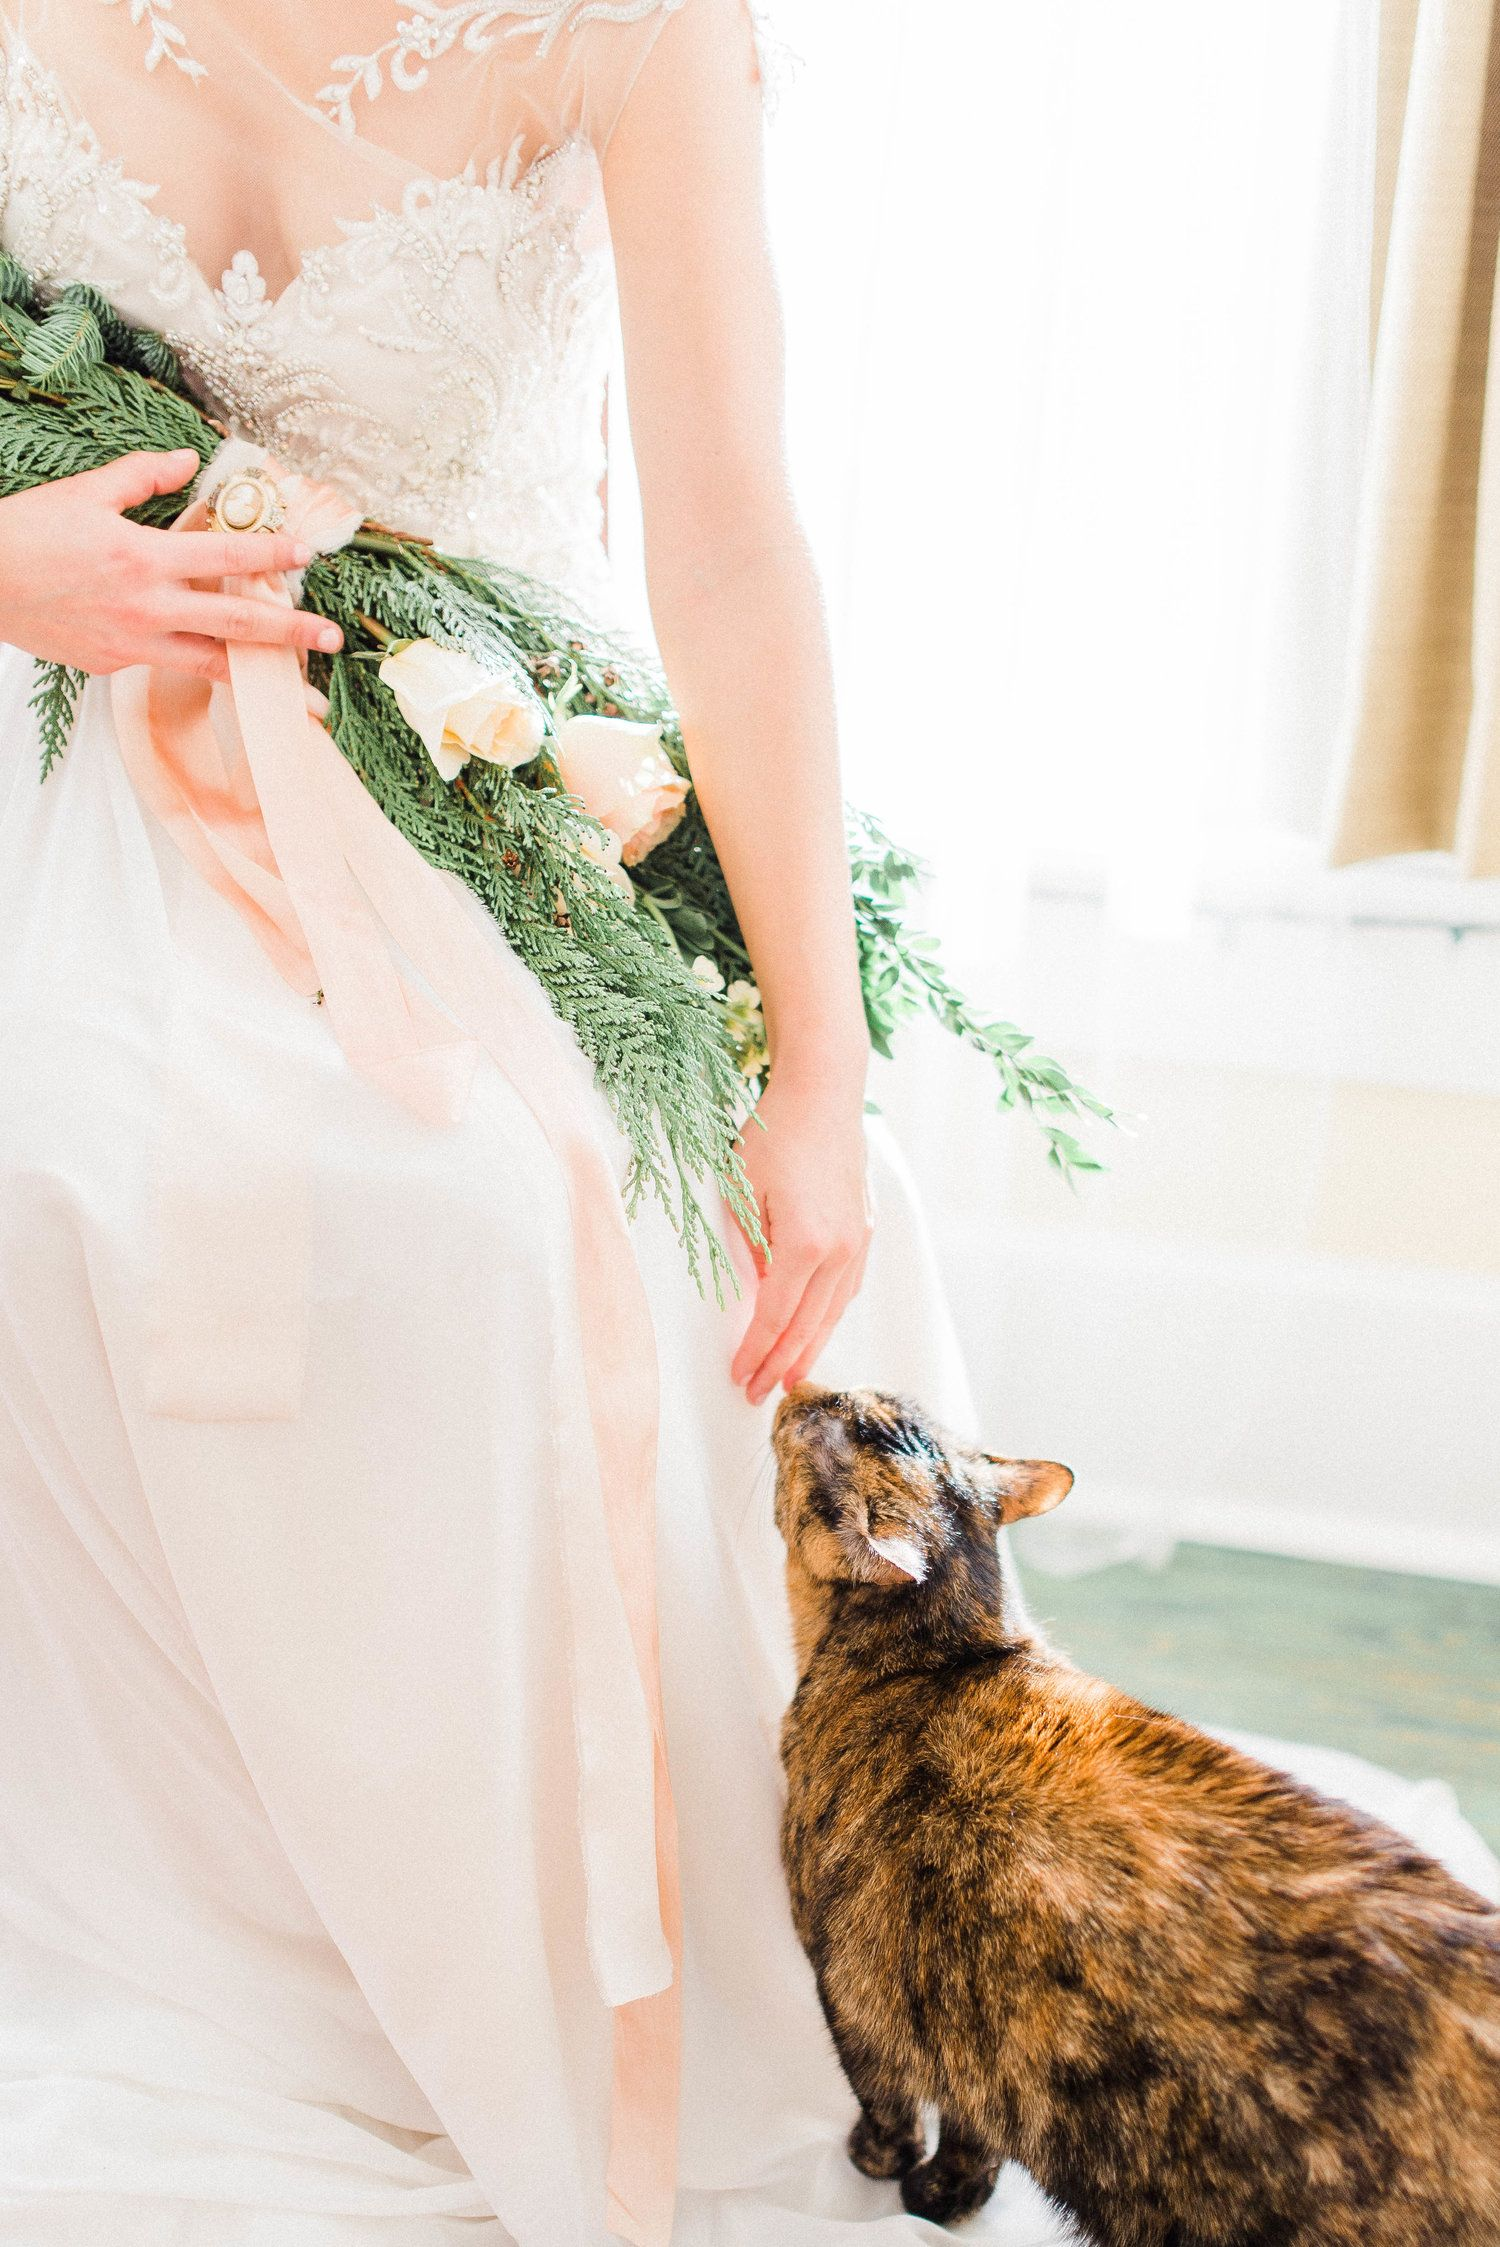 Cat in wedding dress  How sweet is this photo of a romantic bride in her wedding dress